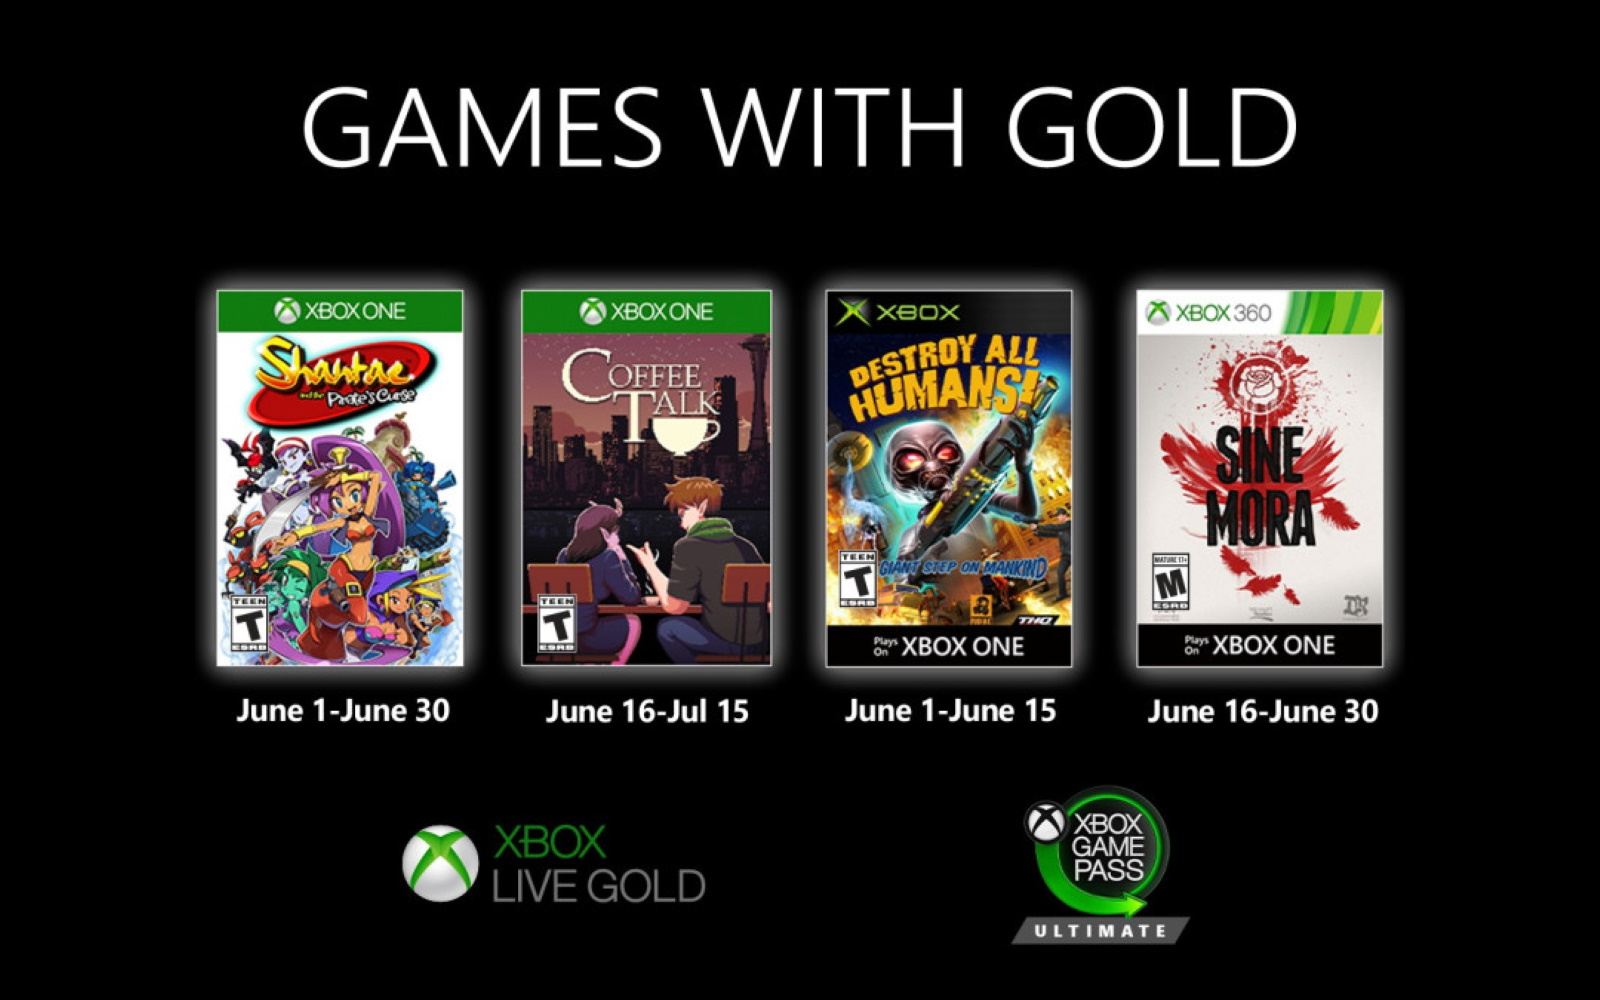 Xbox'x Games With Gold For June 2020